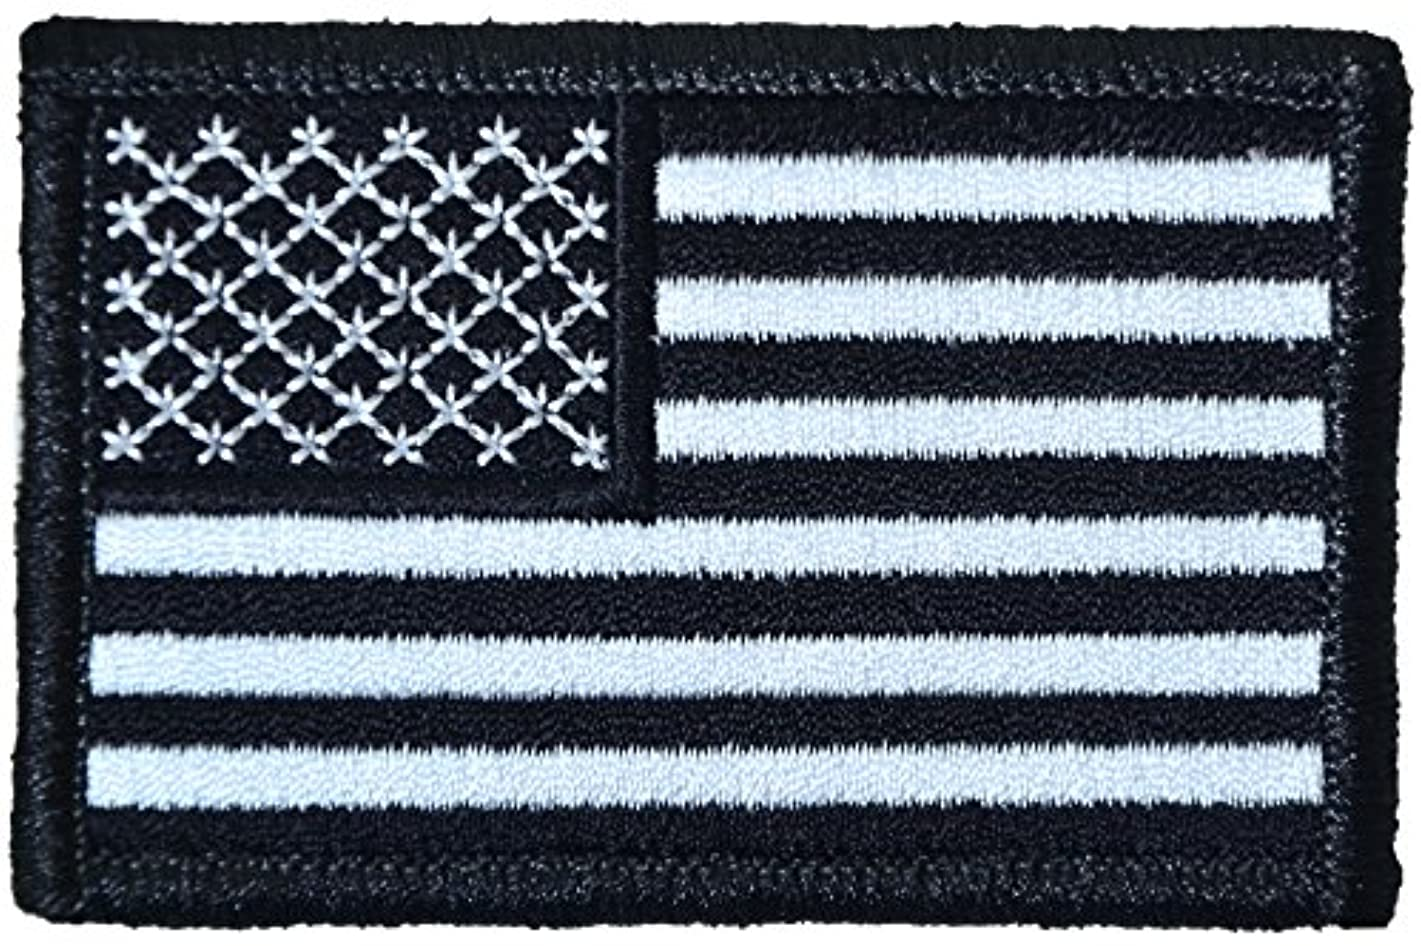 Tactical USA Flag Patch - Black and White 2